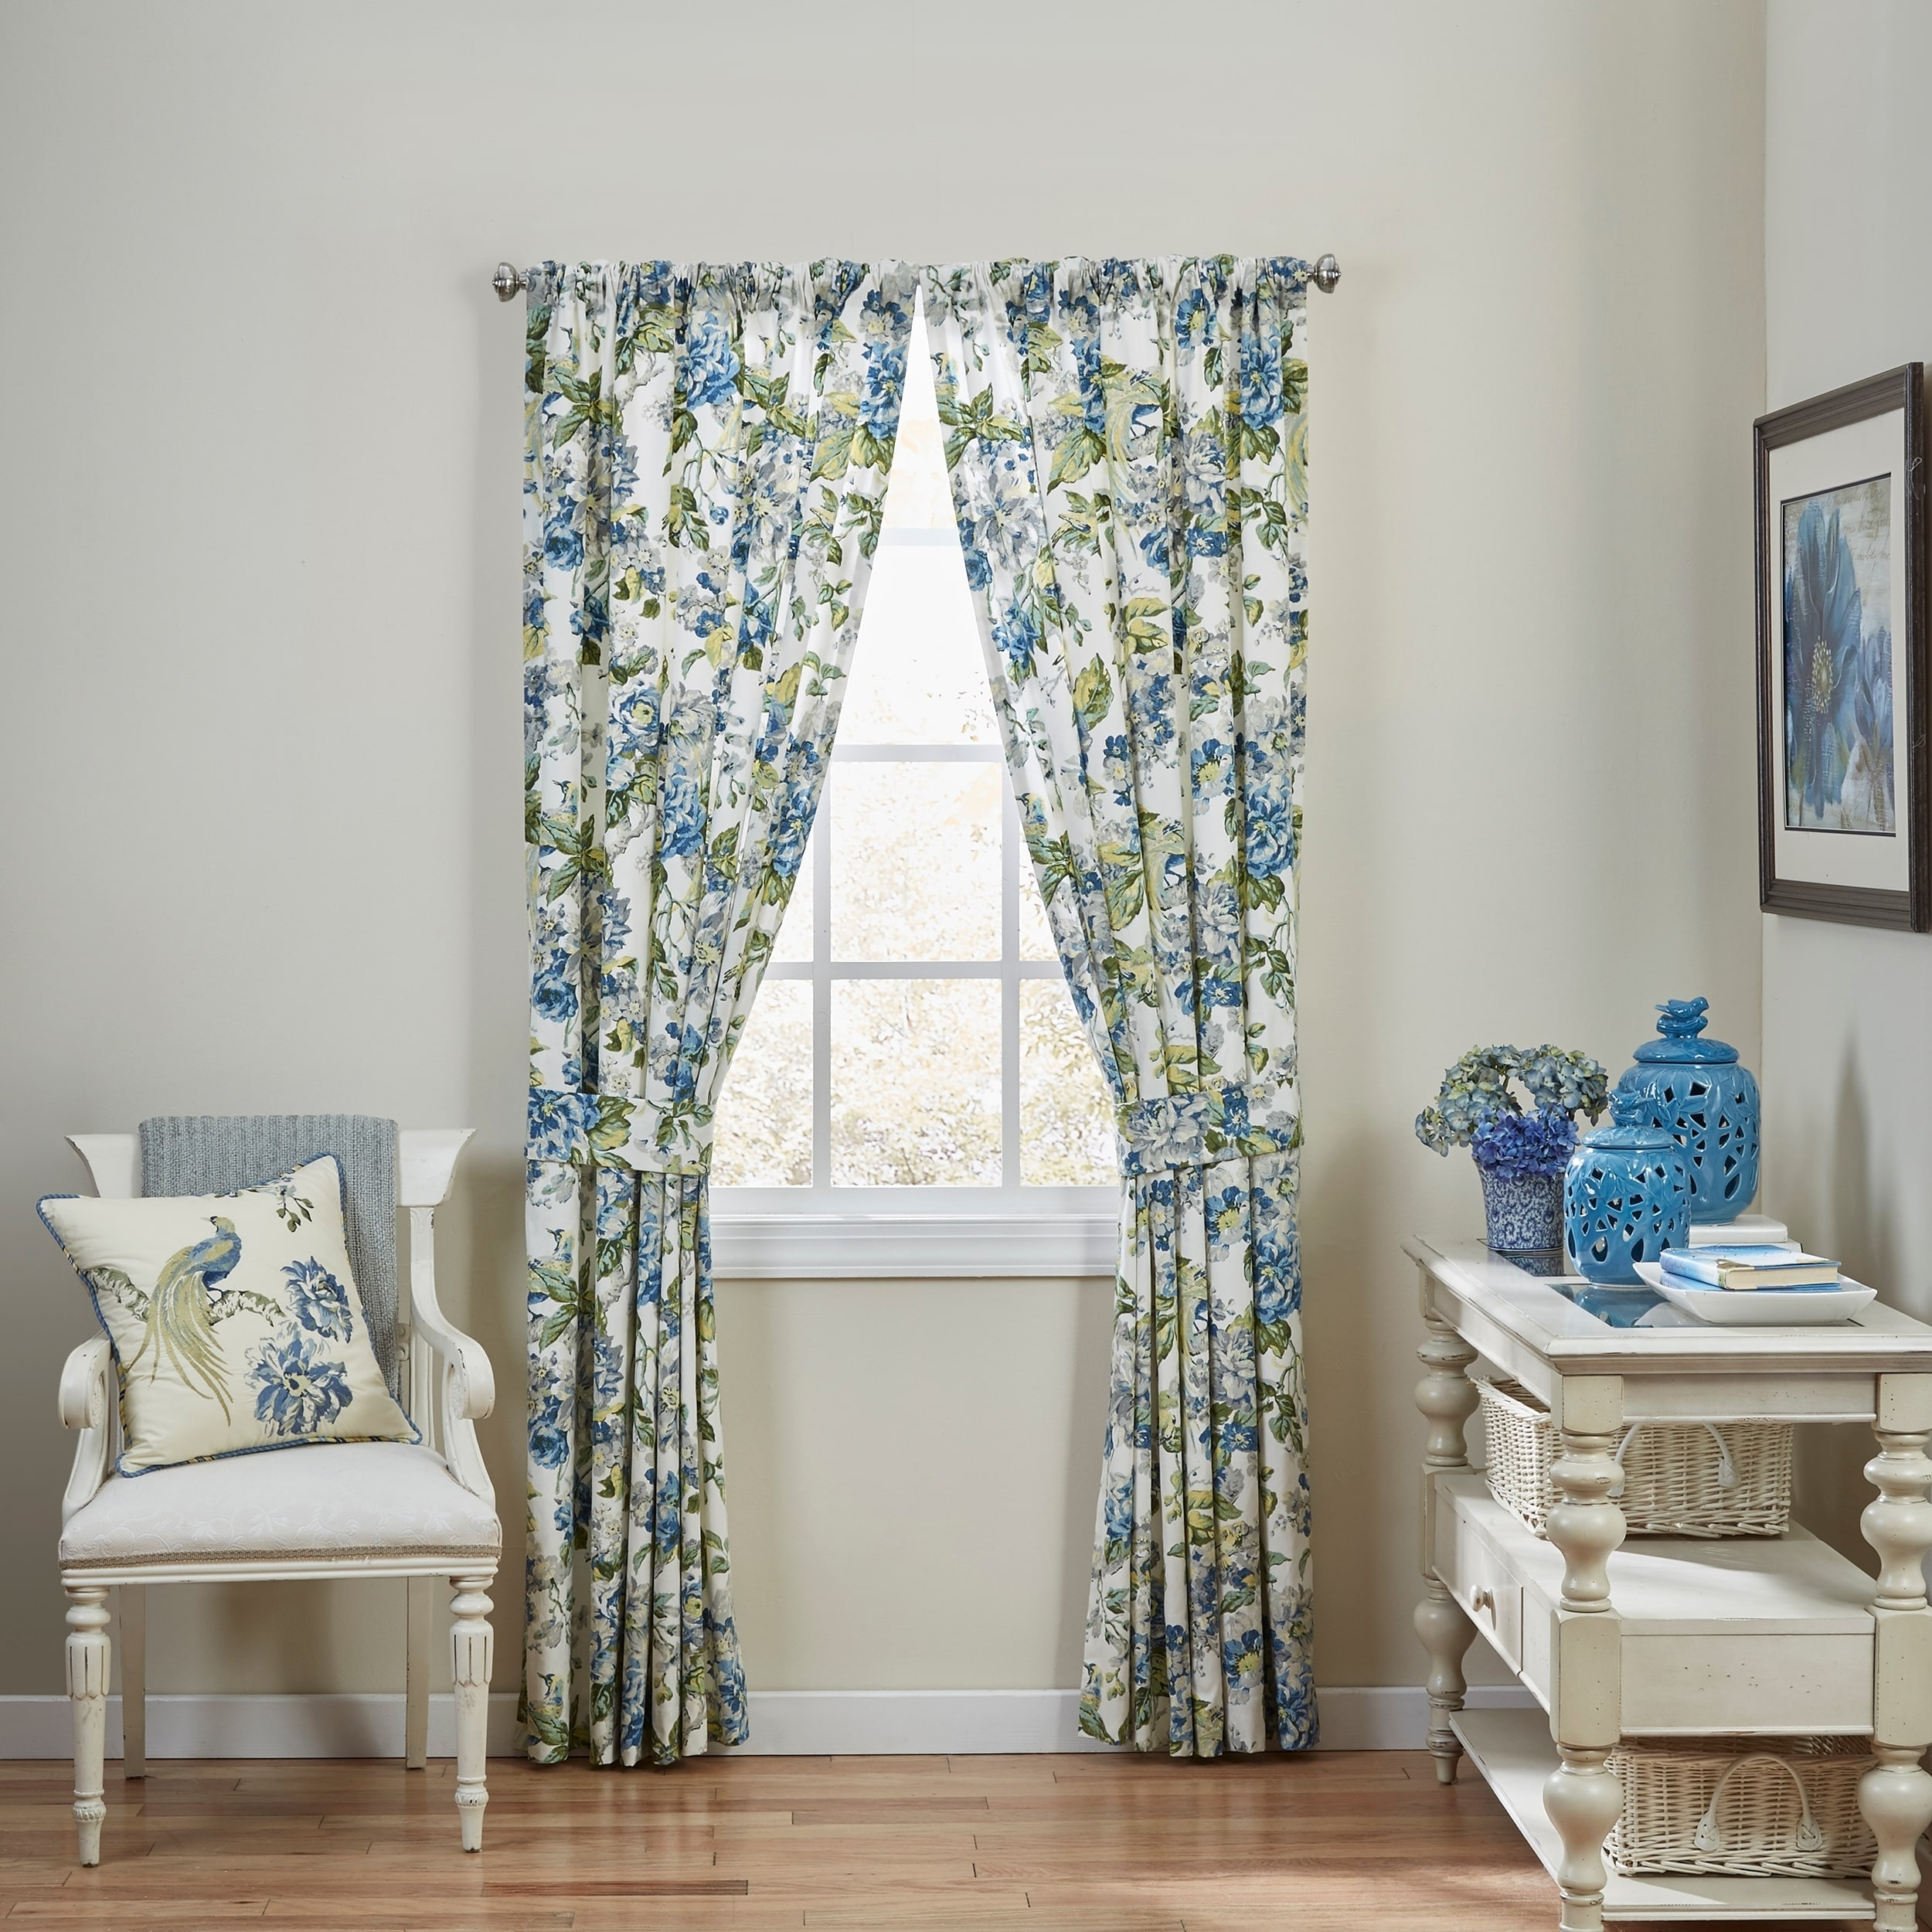 Waverly Floral Engagement Floral Window Drapery Pair, Gre...